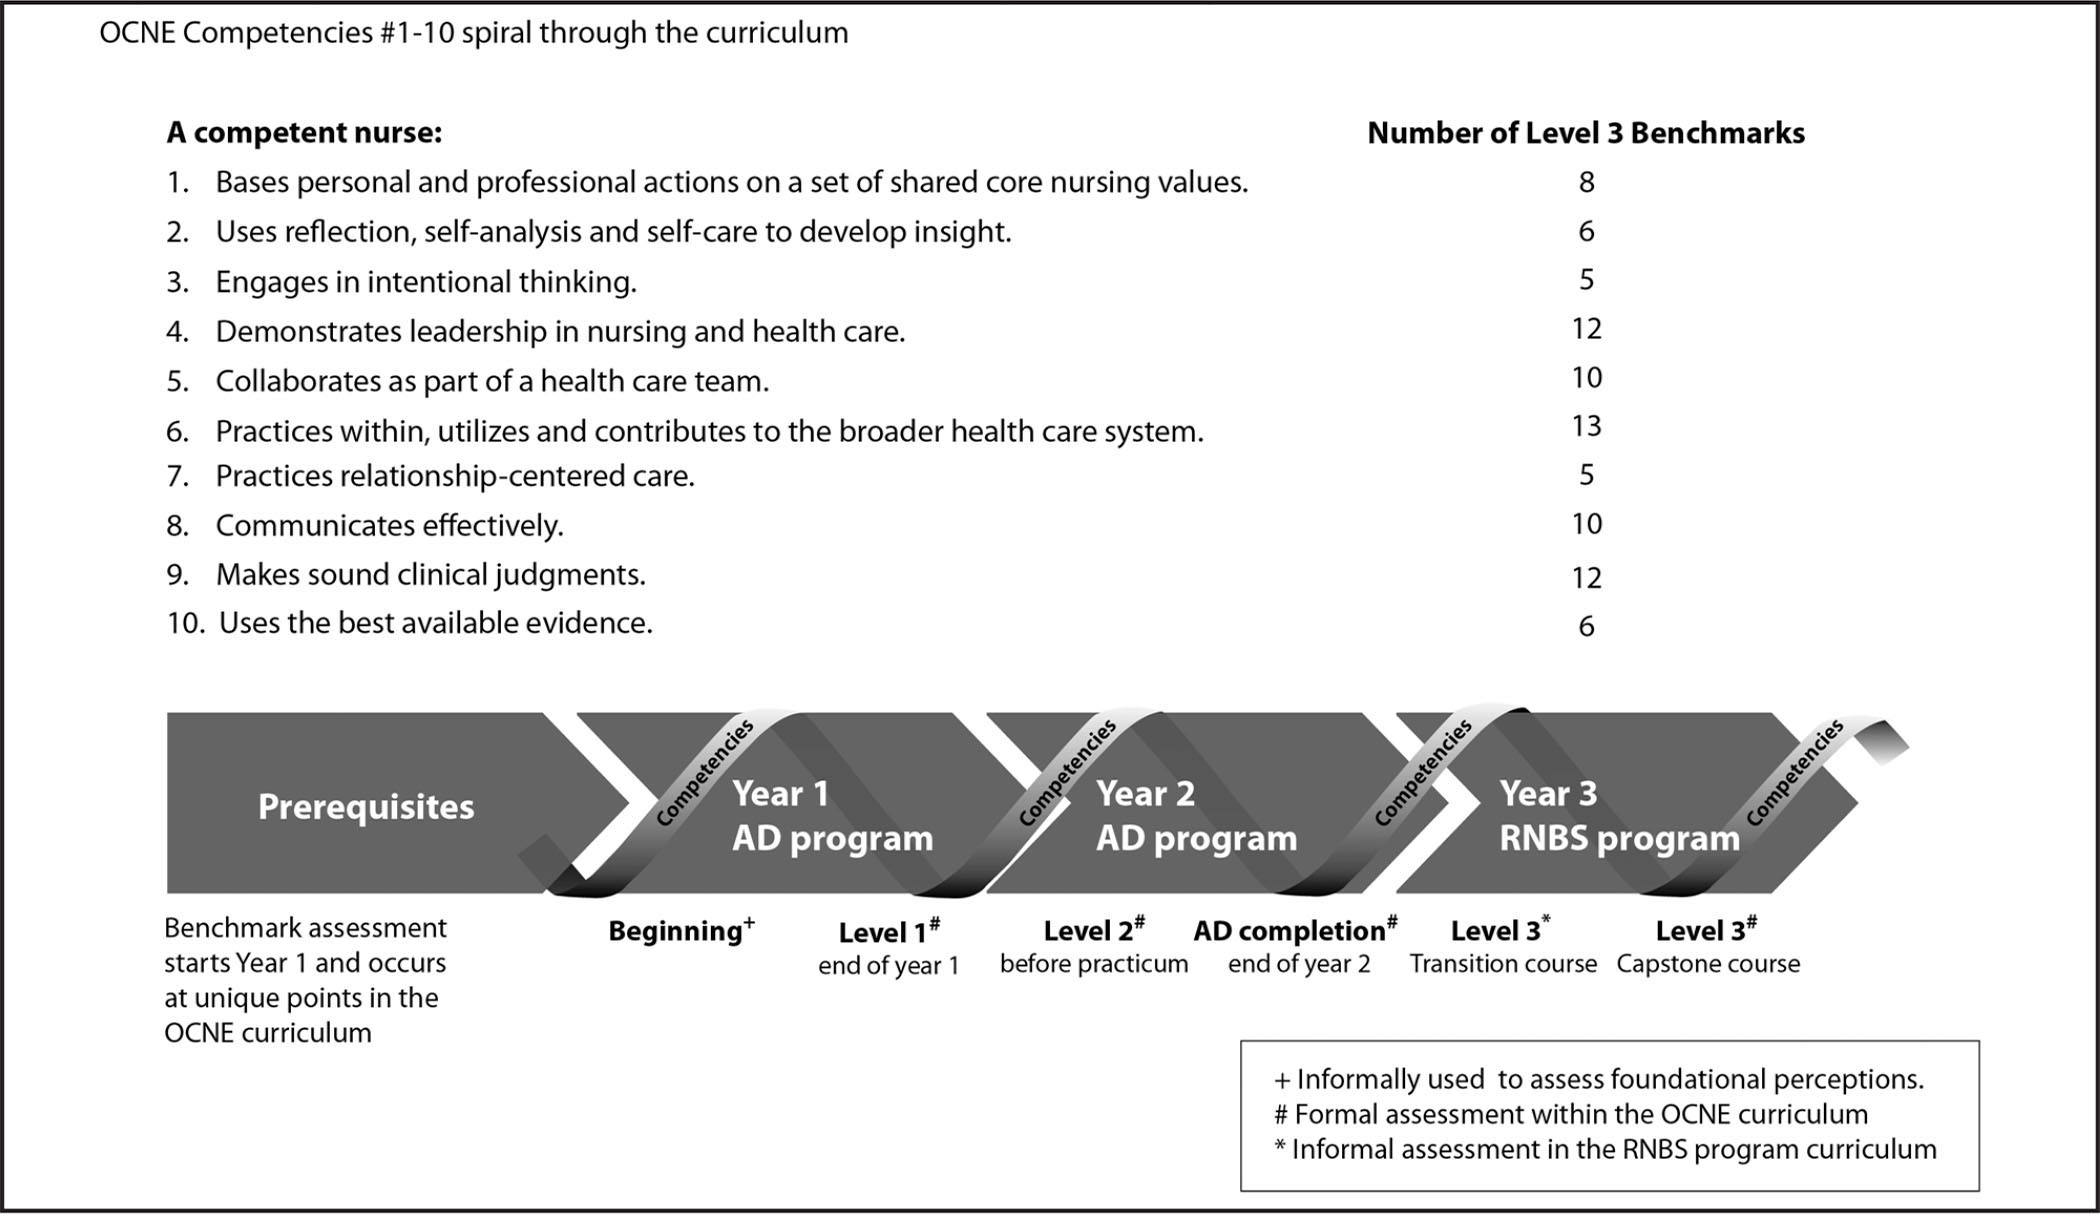 A description of the progression of students from the associate degree (AD) through the RN to Baccalaureate (RNBS) Completion Program, using the Oregon Consortium for Nursing Education (OCNE) framework of competencies and benchmarks, focusing specifically on Level 3. The timing for each formal or informal assessment of benchmark level is indicated. OCNE curriculum (2015) overview is retrieved from http://ocne.org/students/Curriculum.html. Adapted with permission from the Oregon Consortium for Nursing Education Competency Rubrics and Benchmarks. Copyright Northrup-Snyder, K., Menkens, R.M., & Forney, K. (2016).